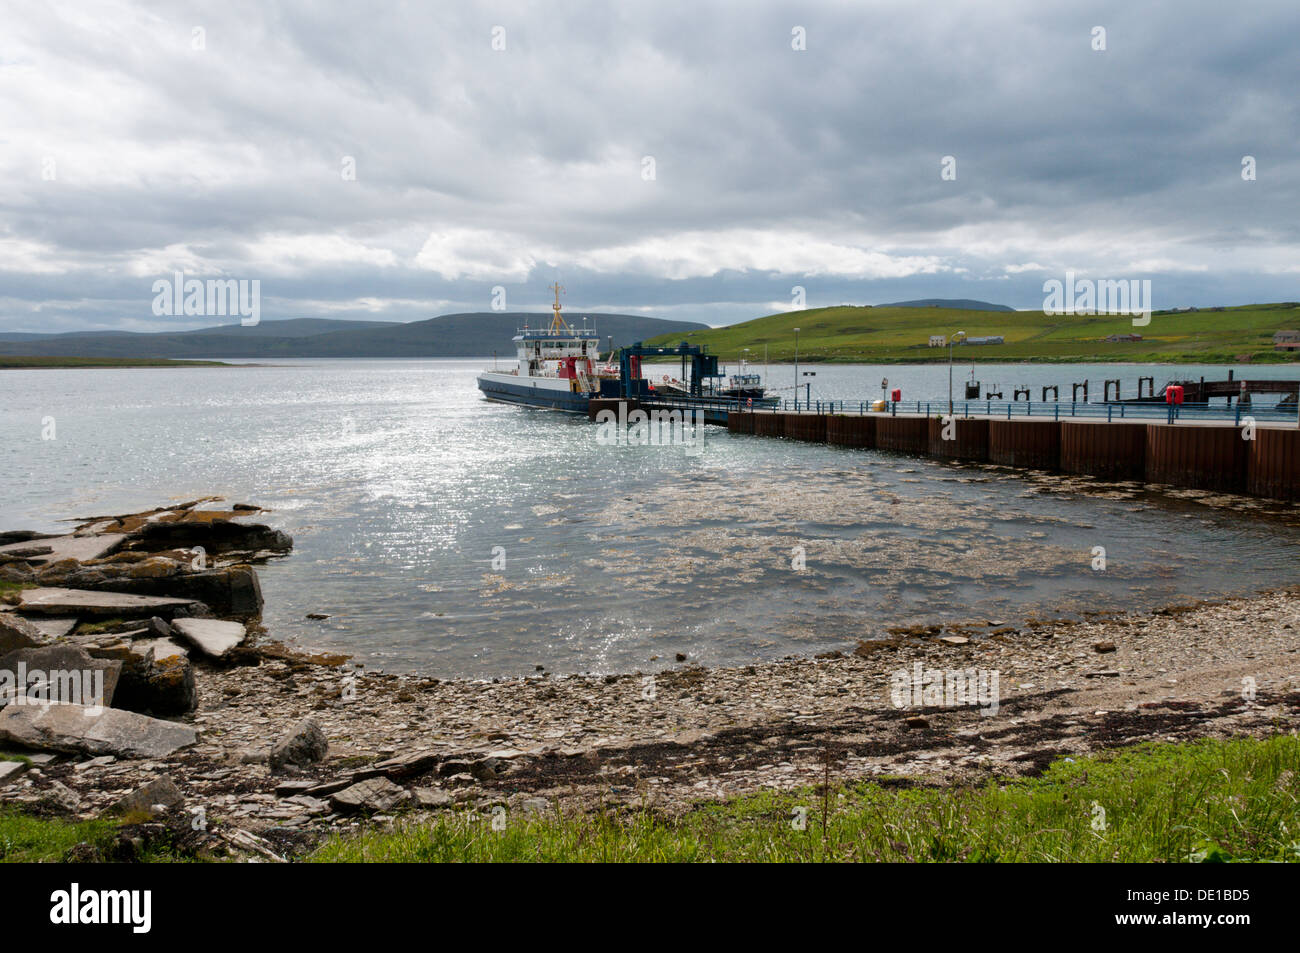 houton bay on orkney mainland with car ferry to hoy loading in the